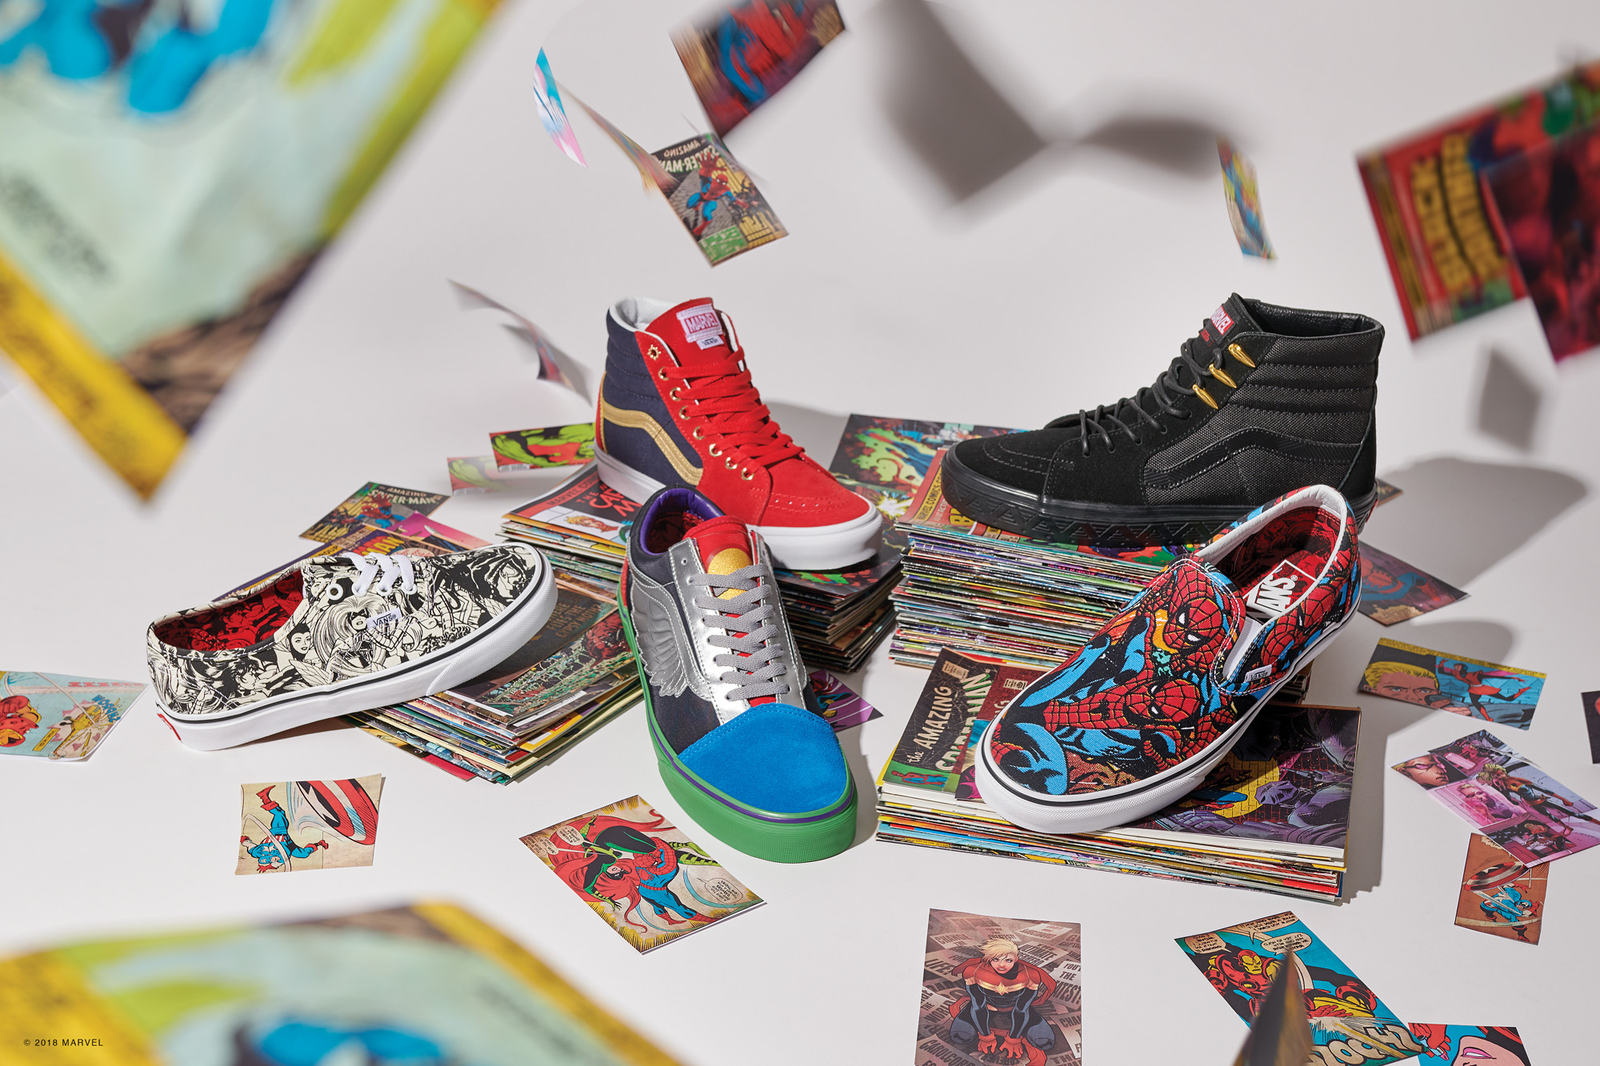 A collection of Vans x Marvel shoes.